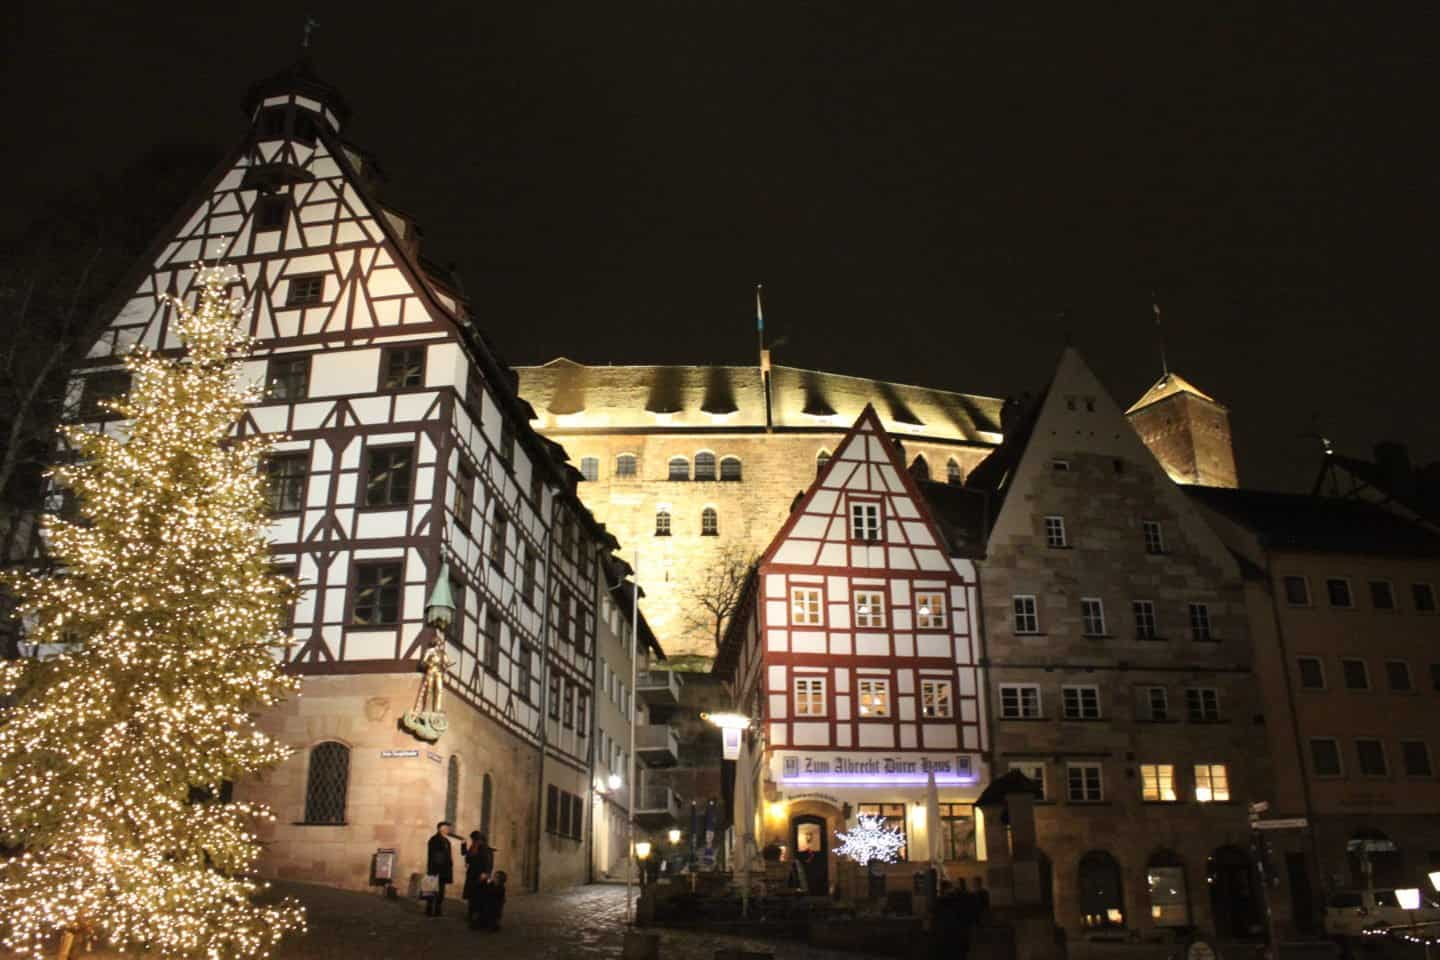 Nuremberg medieval town centre at night